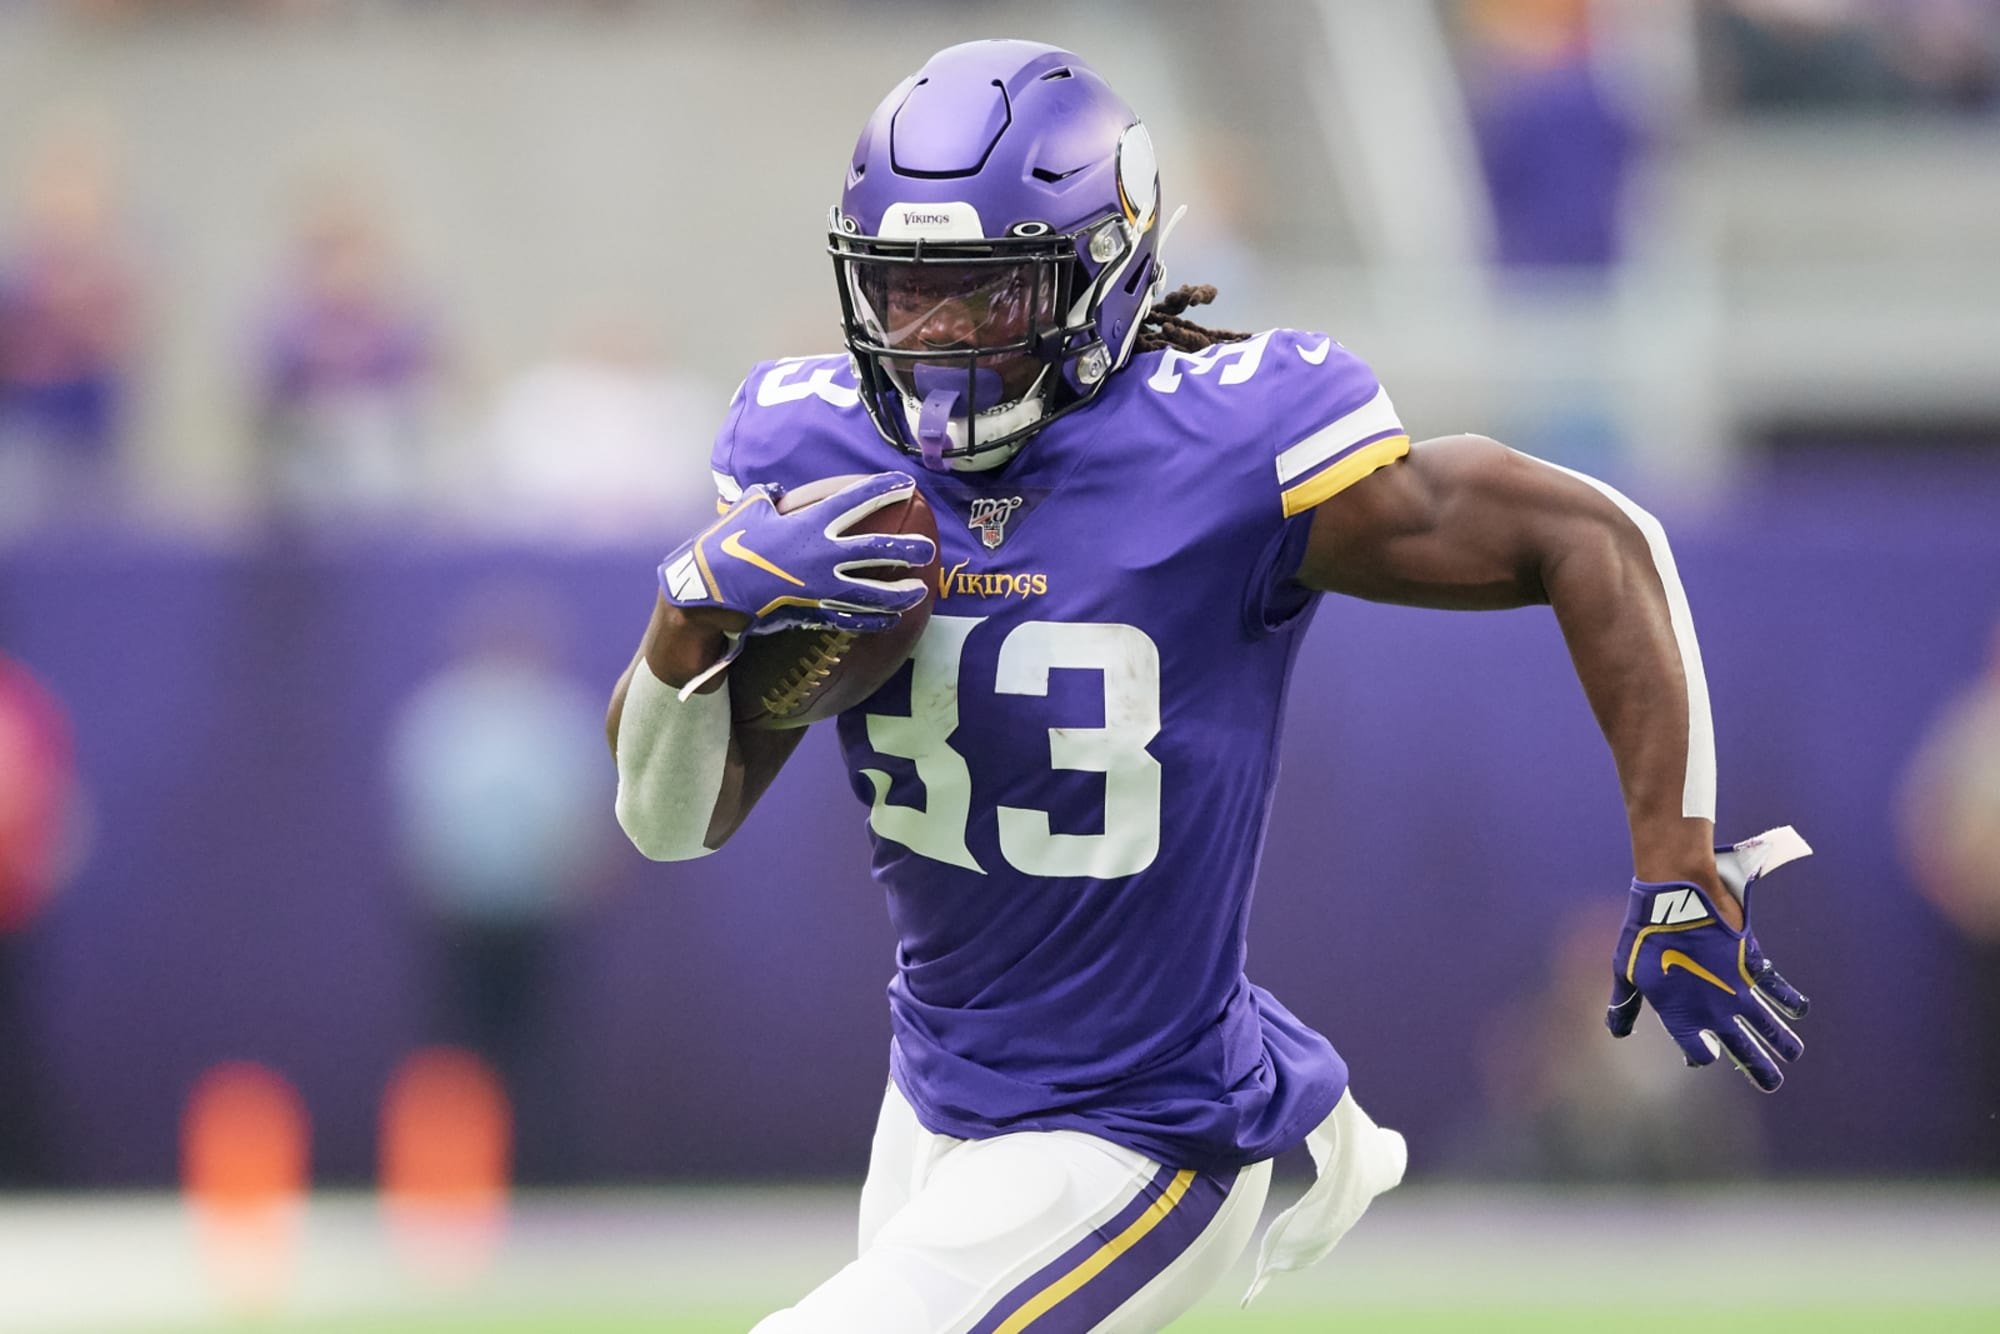 Vikings News: Minnesota trying to get Dalvin Cook 'locked up'